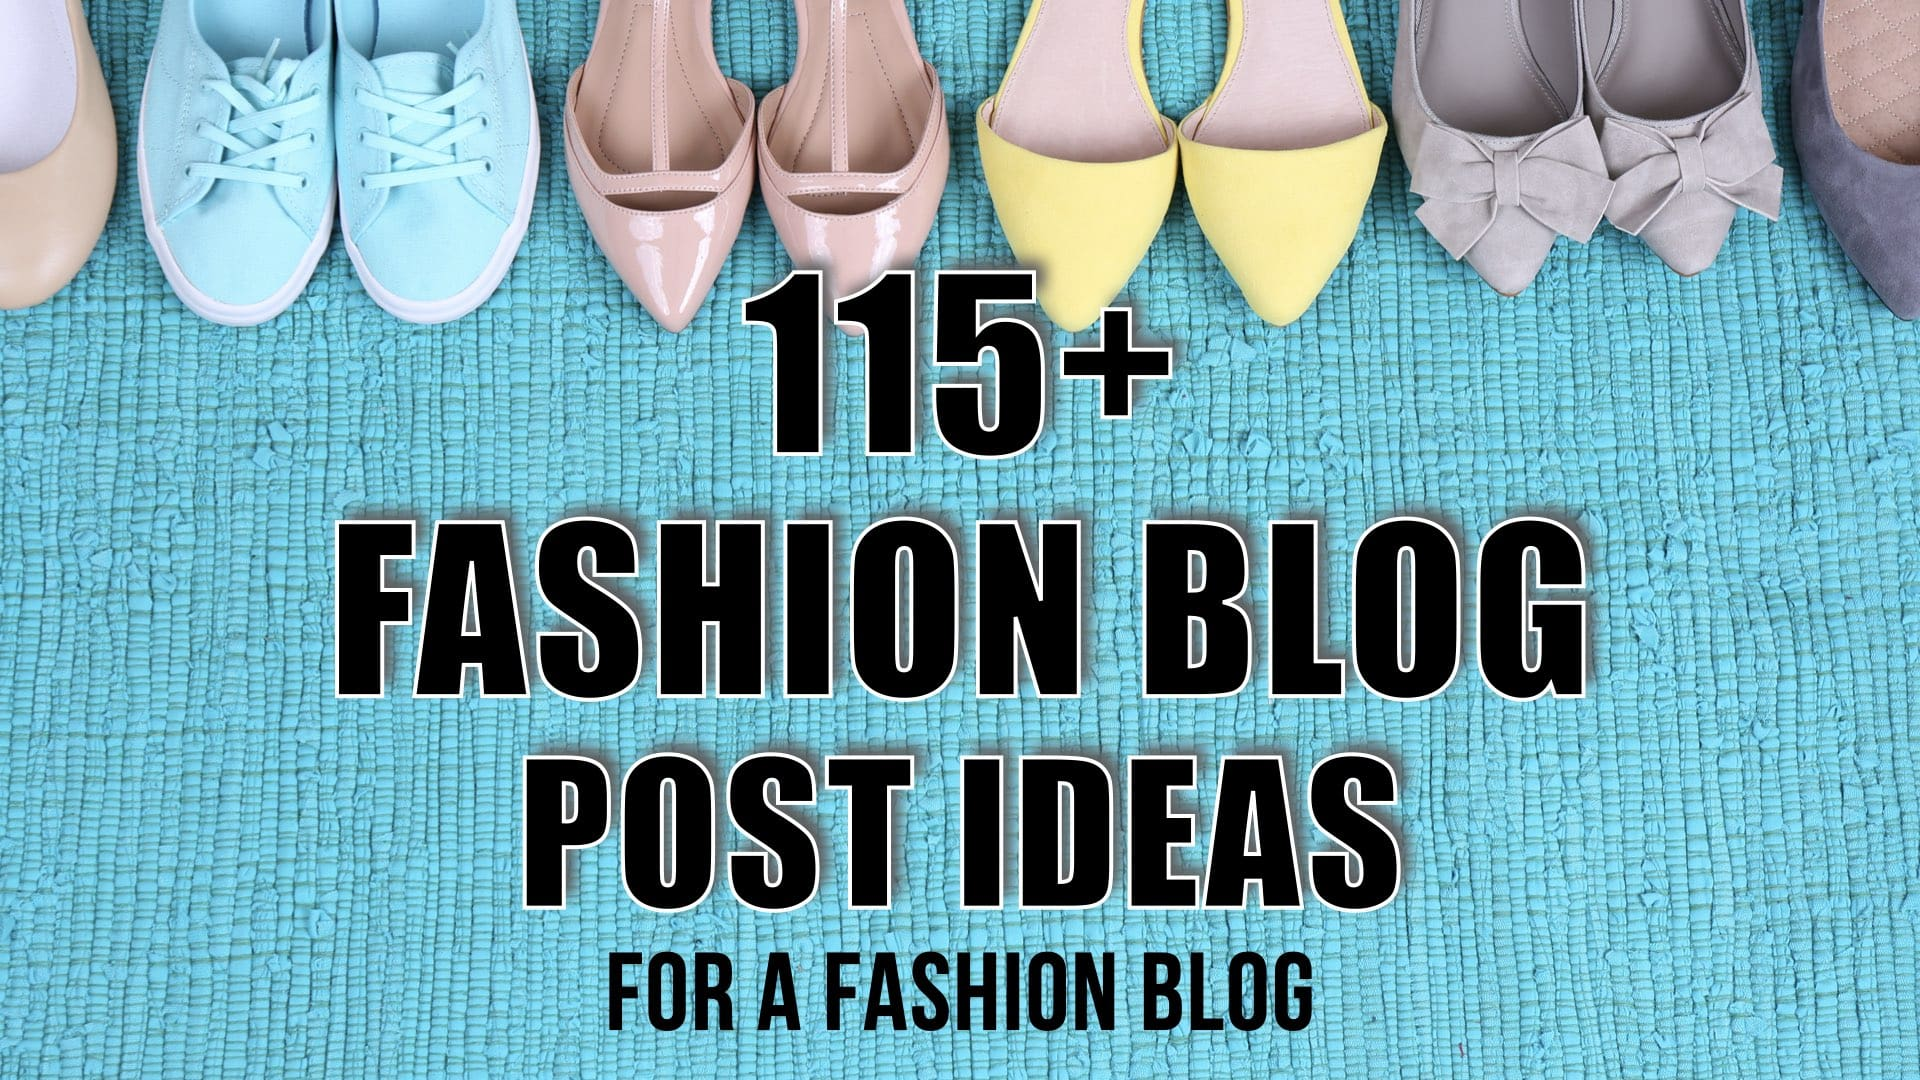 Writer's block? No worries, check out this fresh list of fashion blog post ideas that'll drive massive traffic to your blog. You'll NEVER run out of topic ideas again.